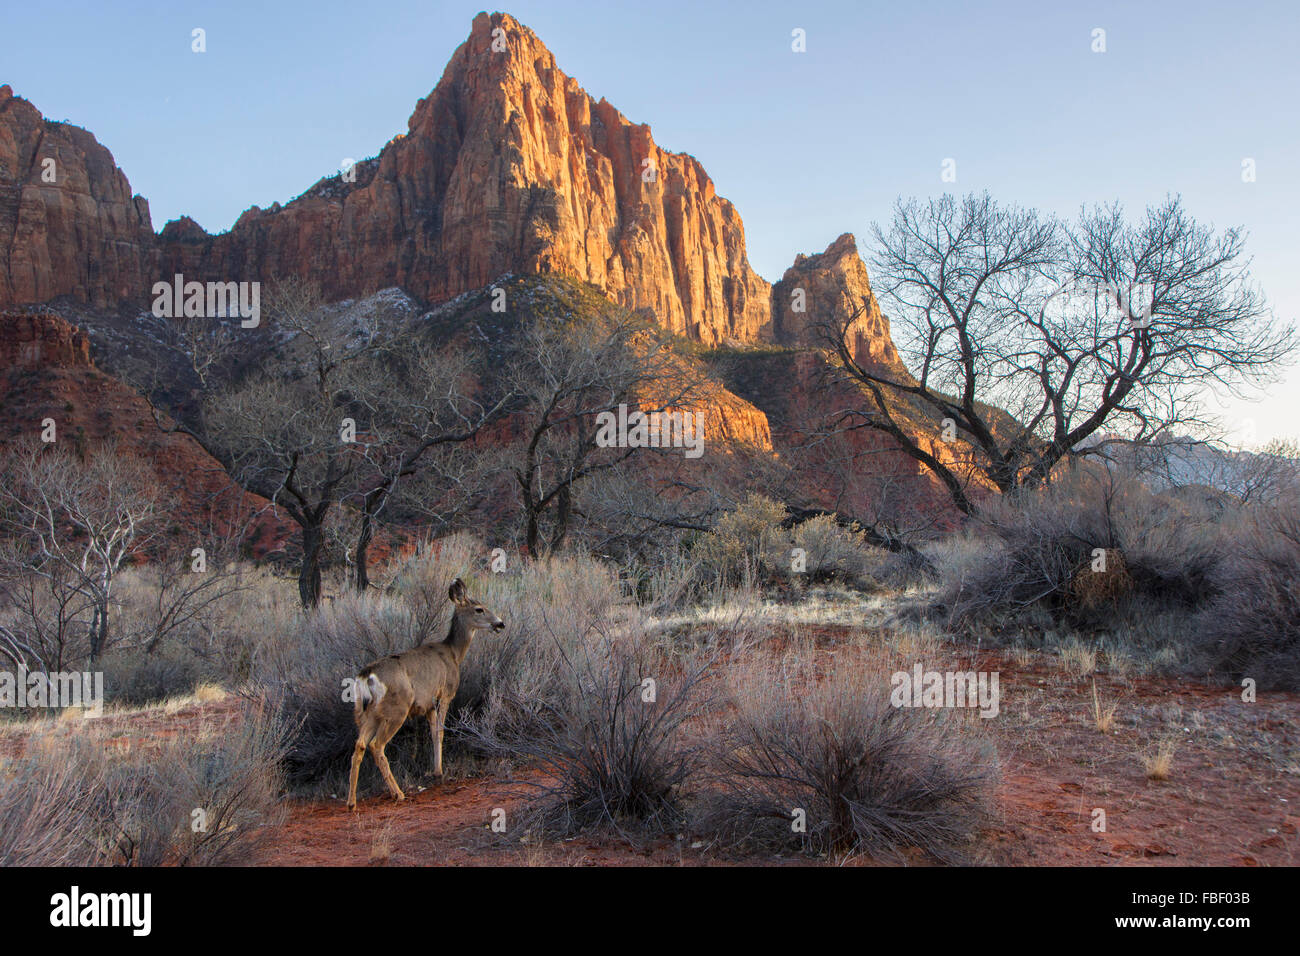 Deer and The Watchman, Zion National Park - Stock Image